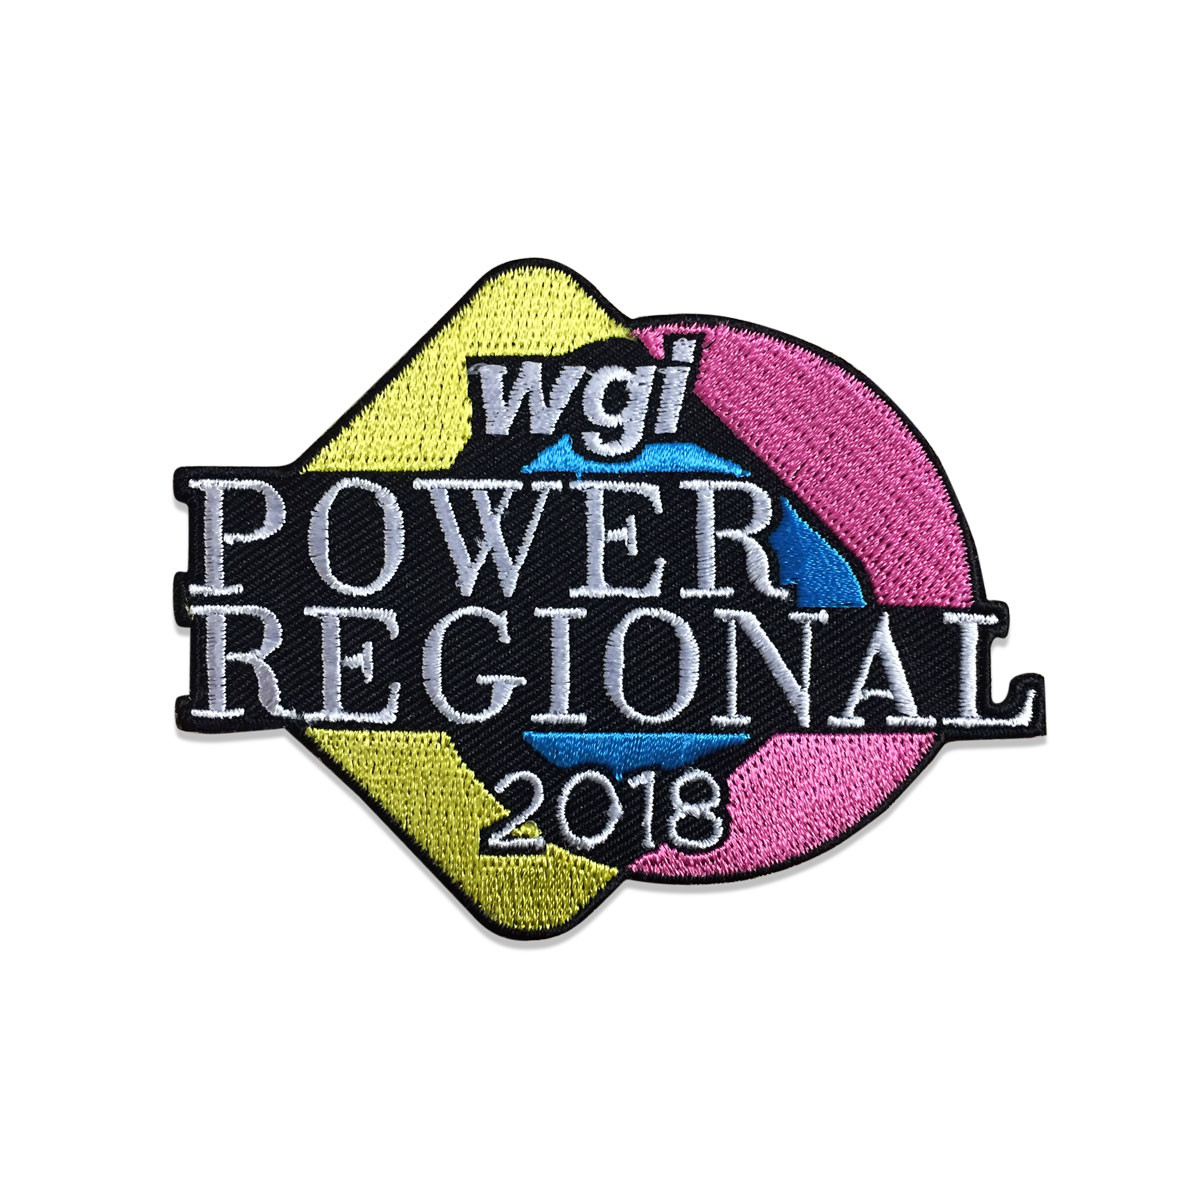 2018 WGI Power Regional Patch